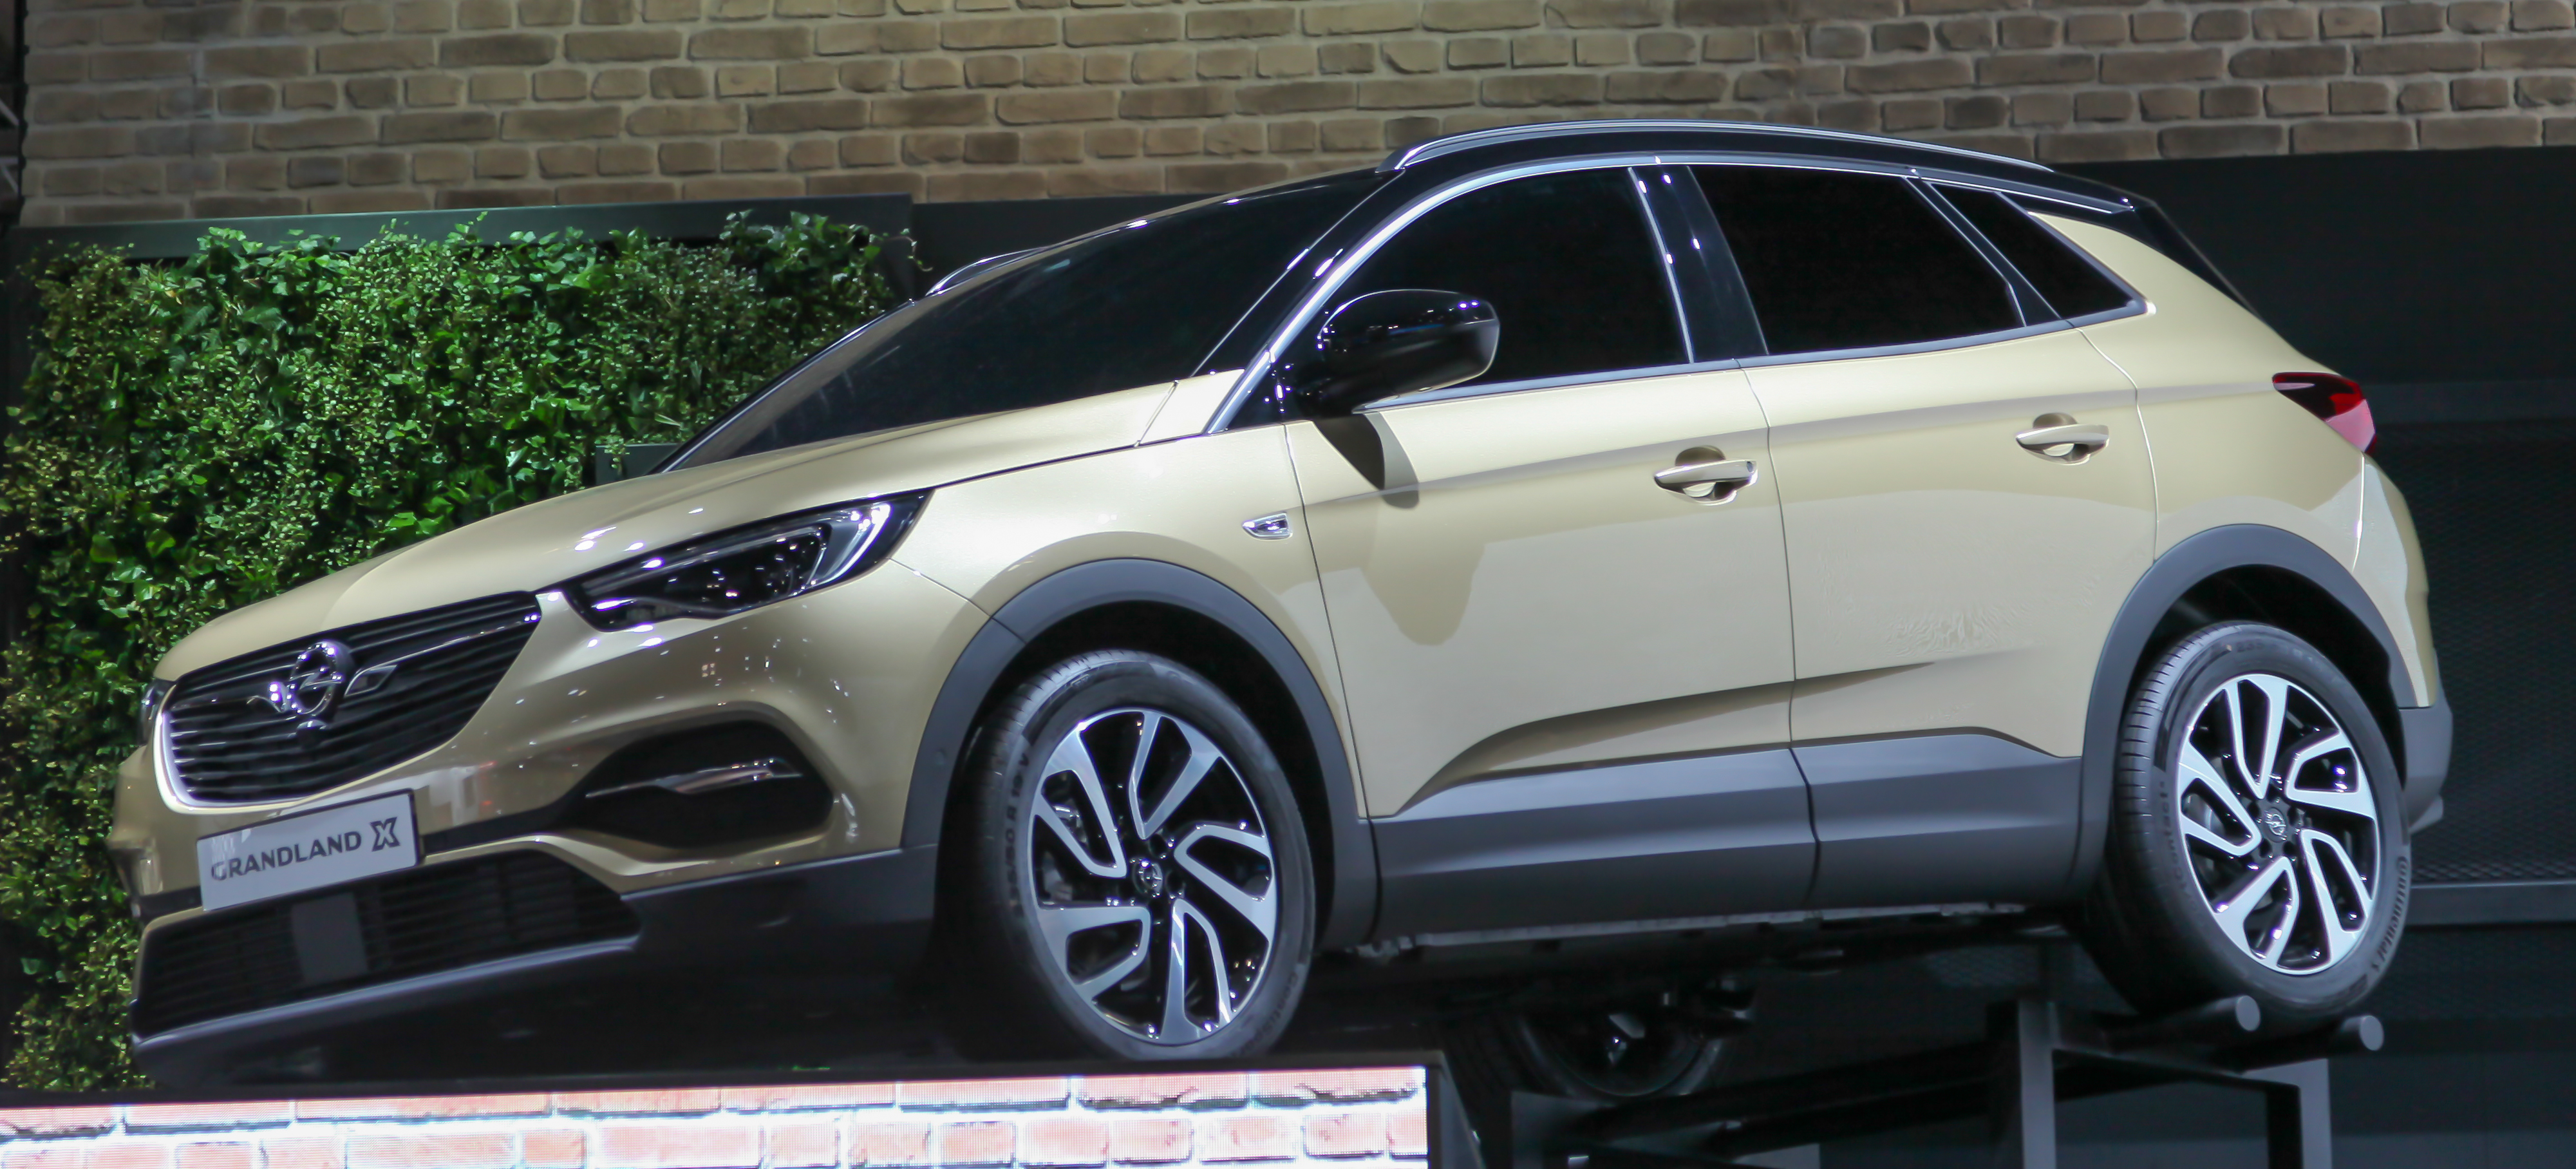 file opel grandland x img wikimedia commons. Black Bedroom Furniture Sets. Home Design Ideas